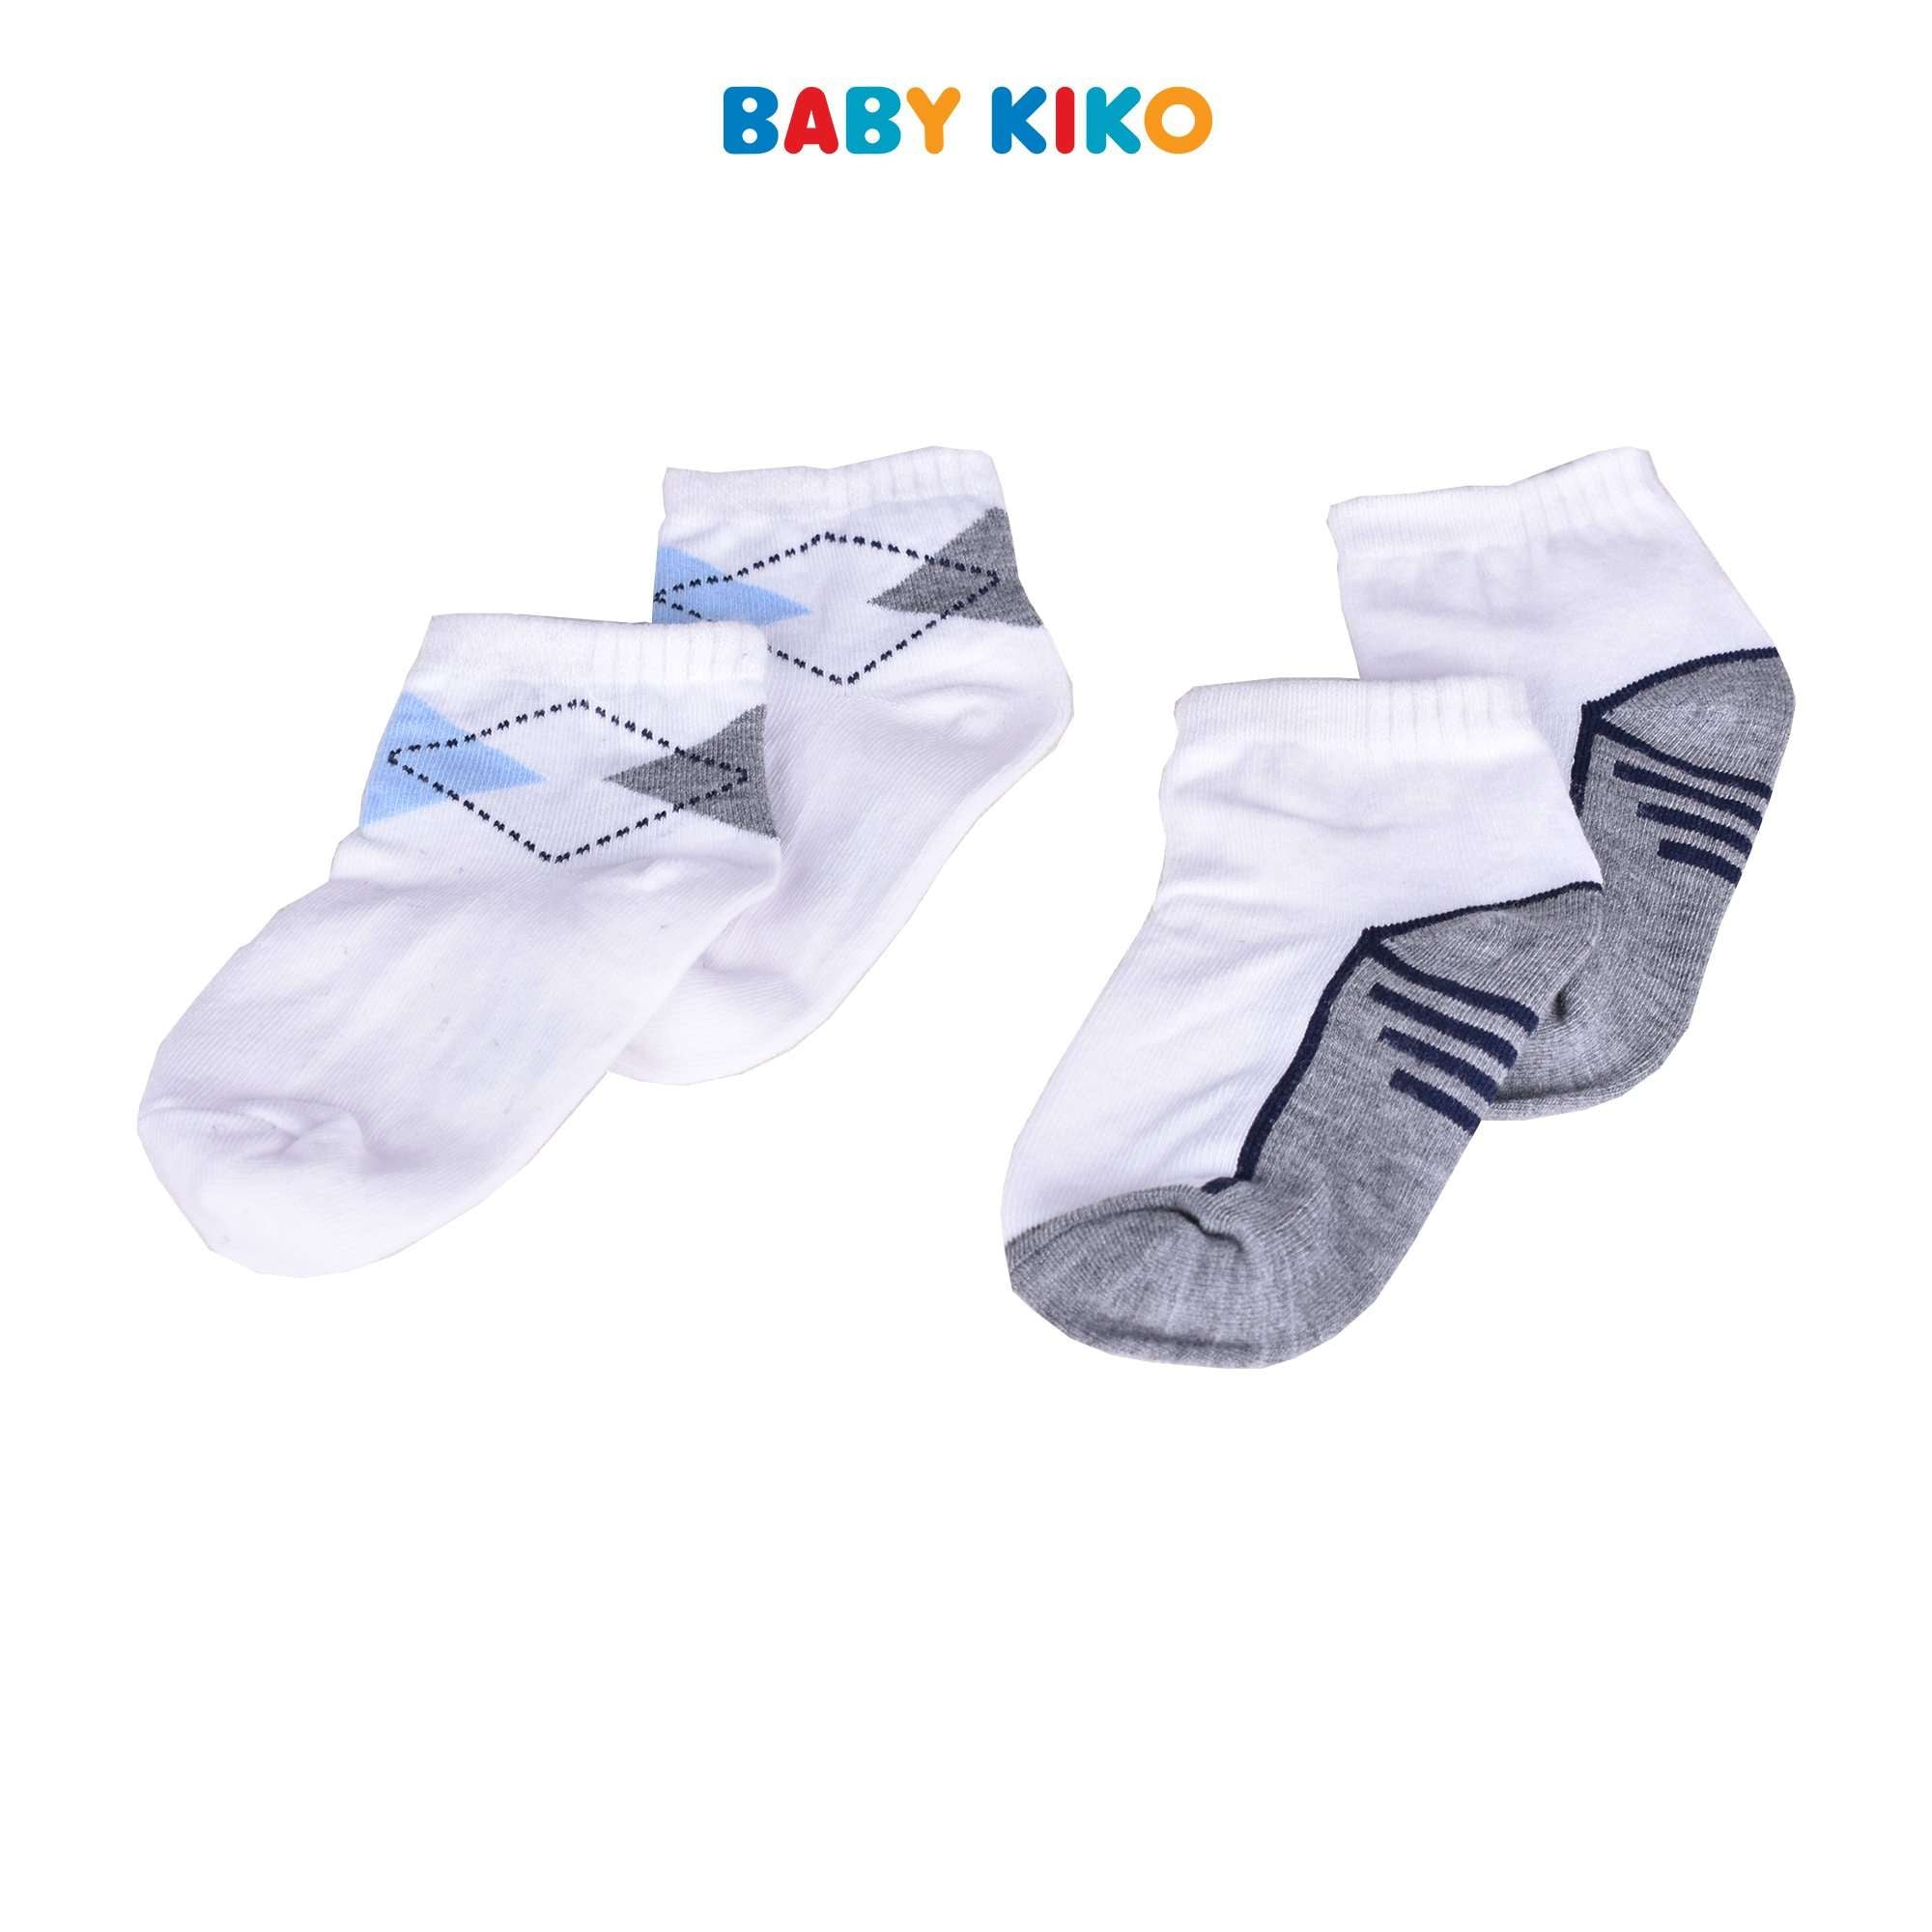 Baby KIKO Toddler Boy Ankle Height Socks 757 Kids Baby